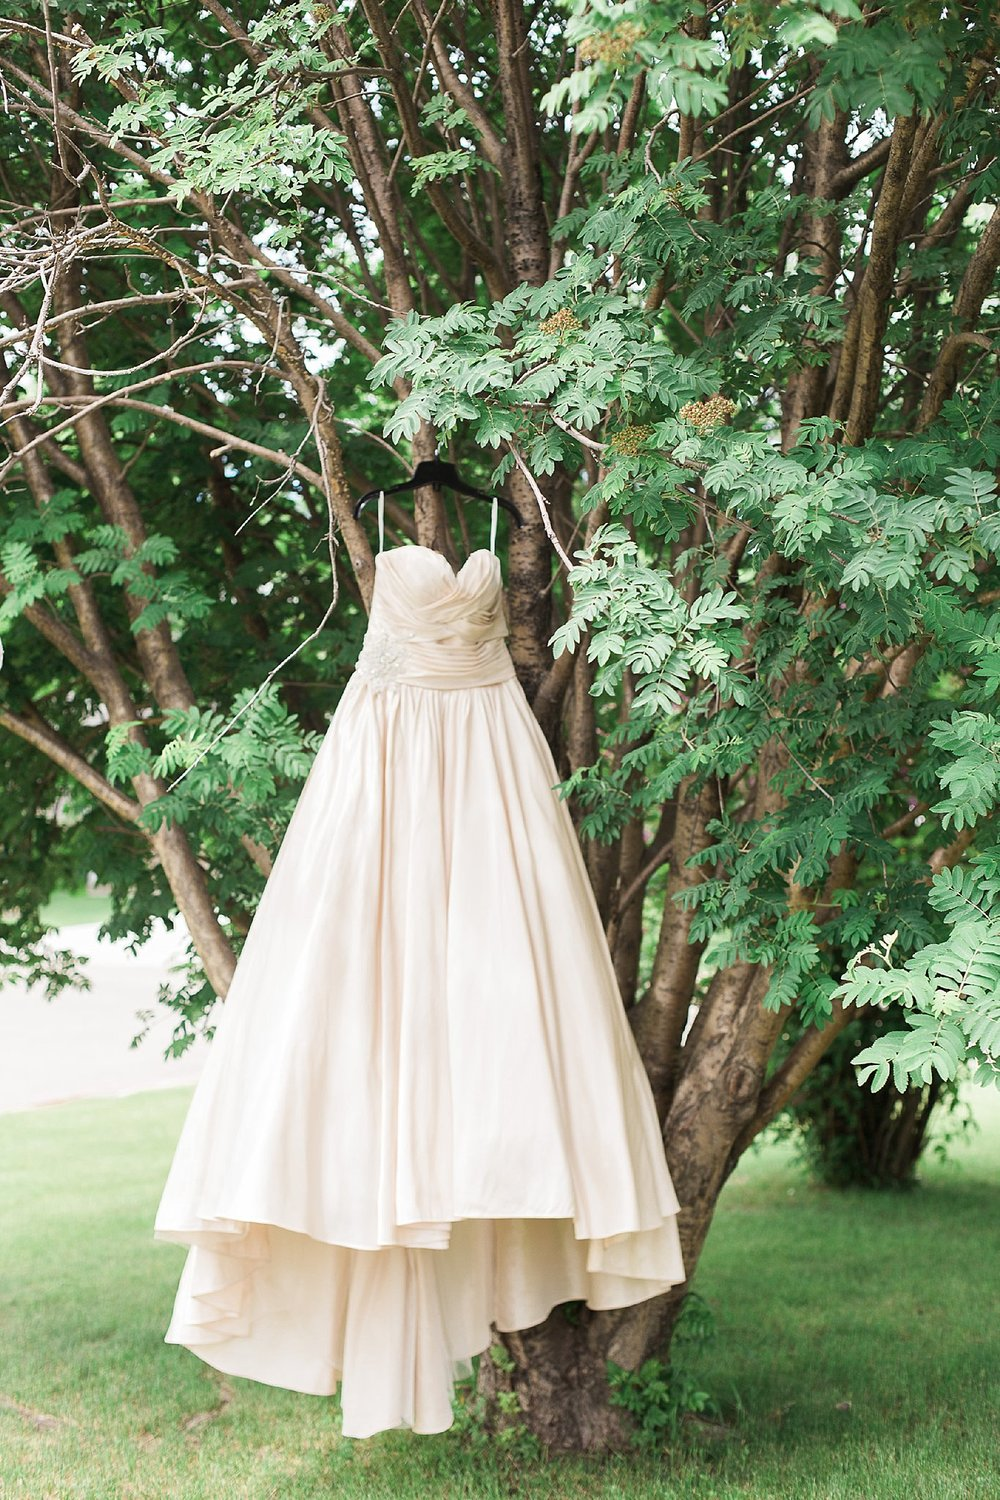 RCMP Wedding - Winnipeg Wedding Photographer - Creme Wedding Dress - Keila Marie Photography